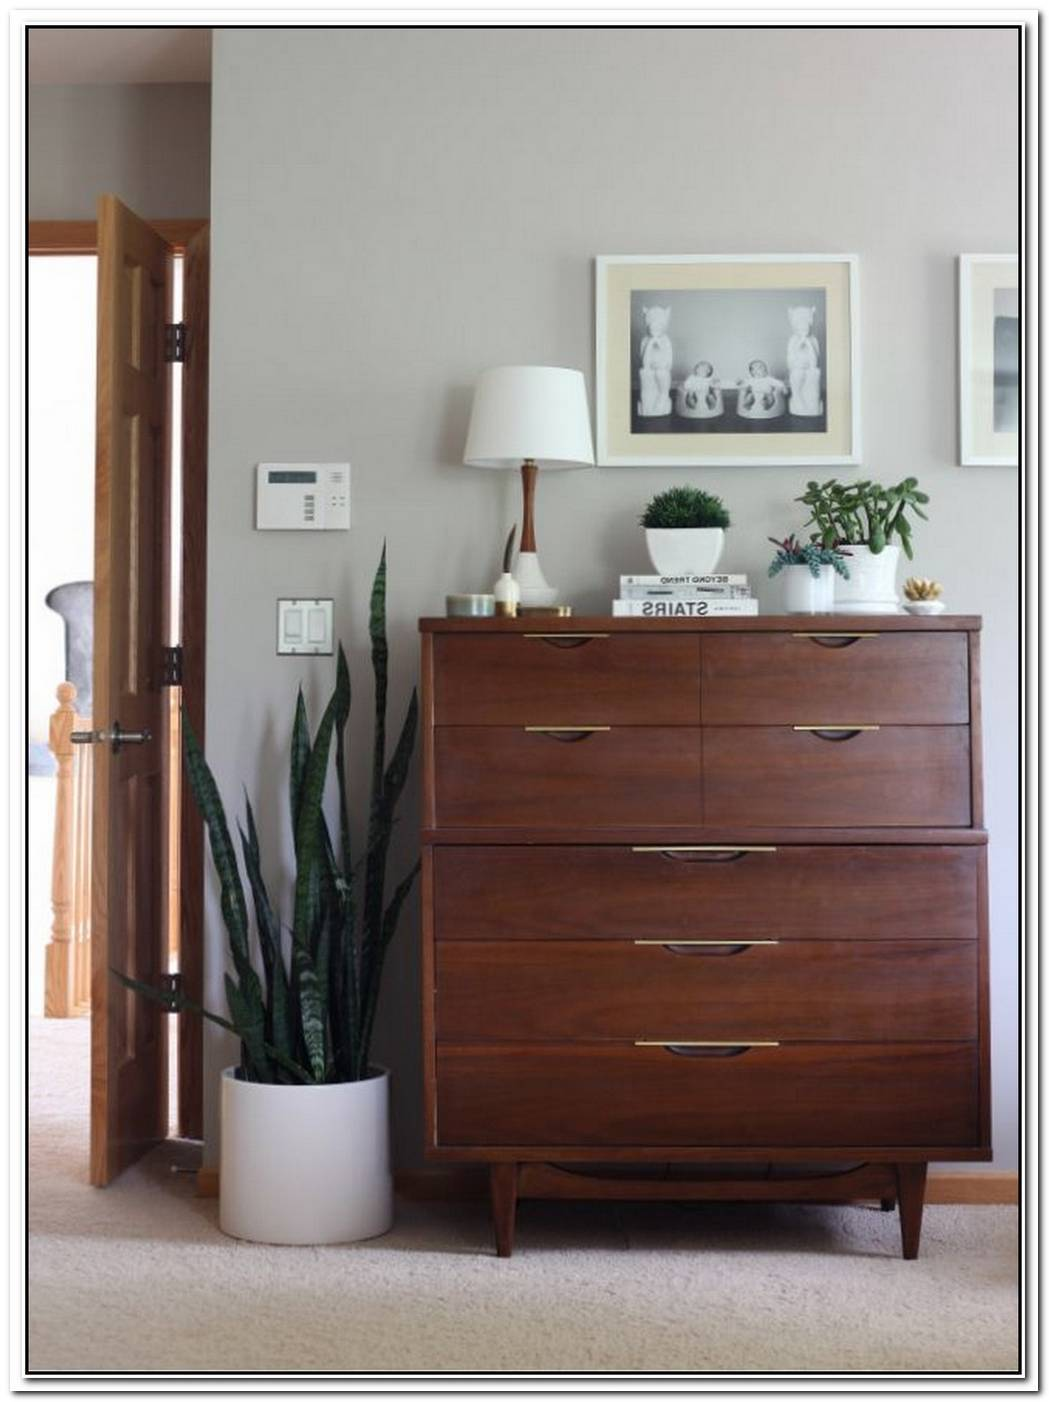 Check Out These Uber Cool Ways To Style Your Vintage Dresser